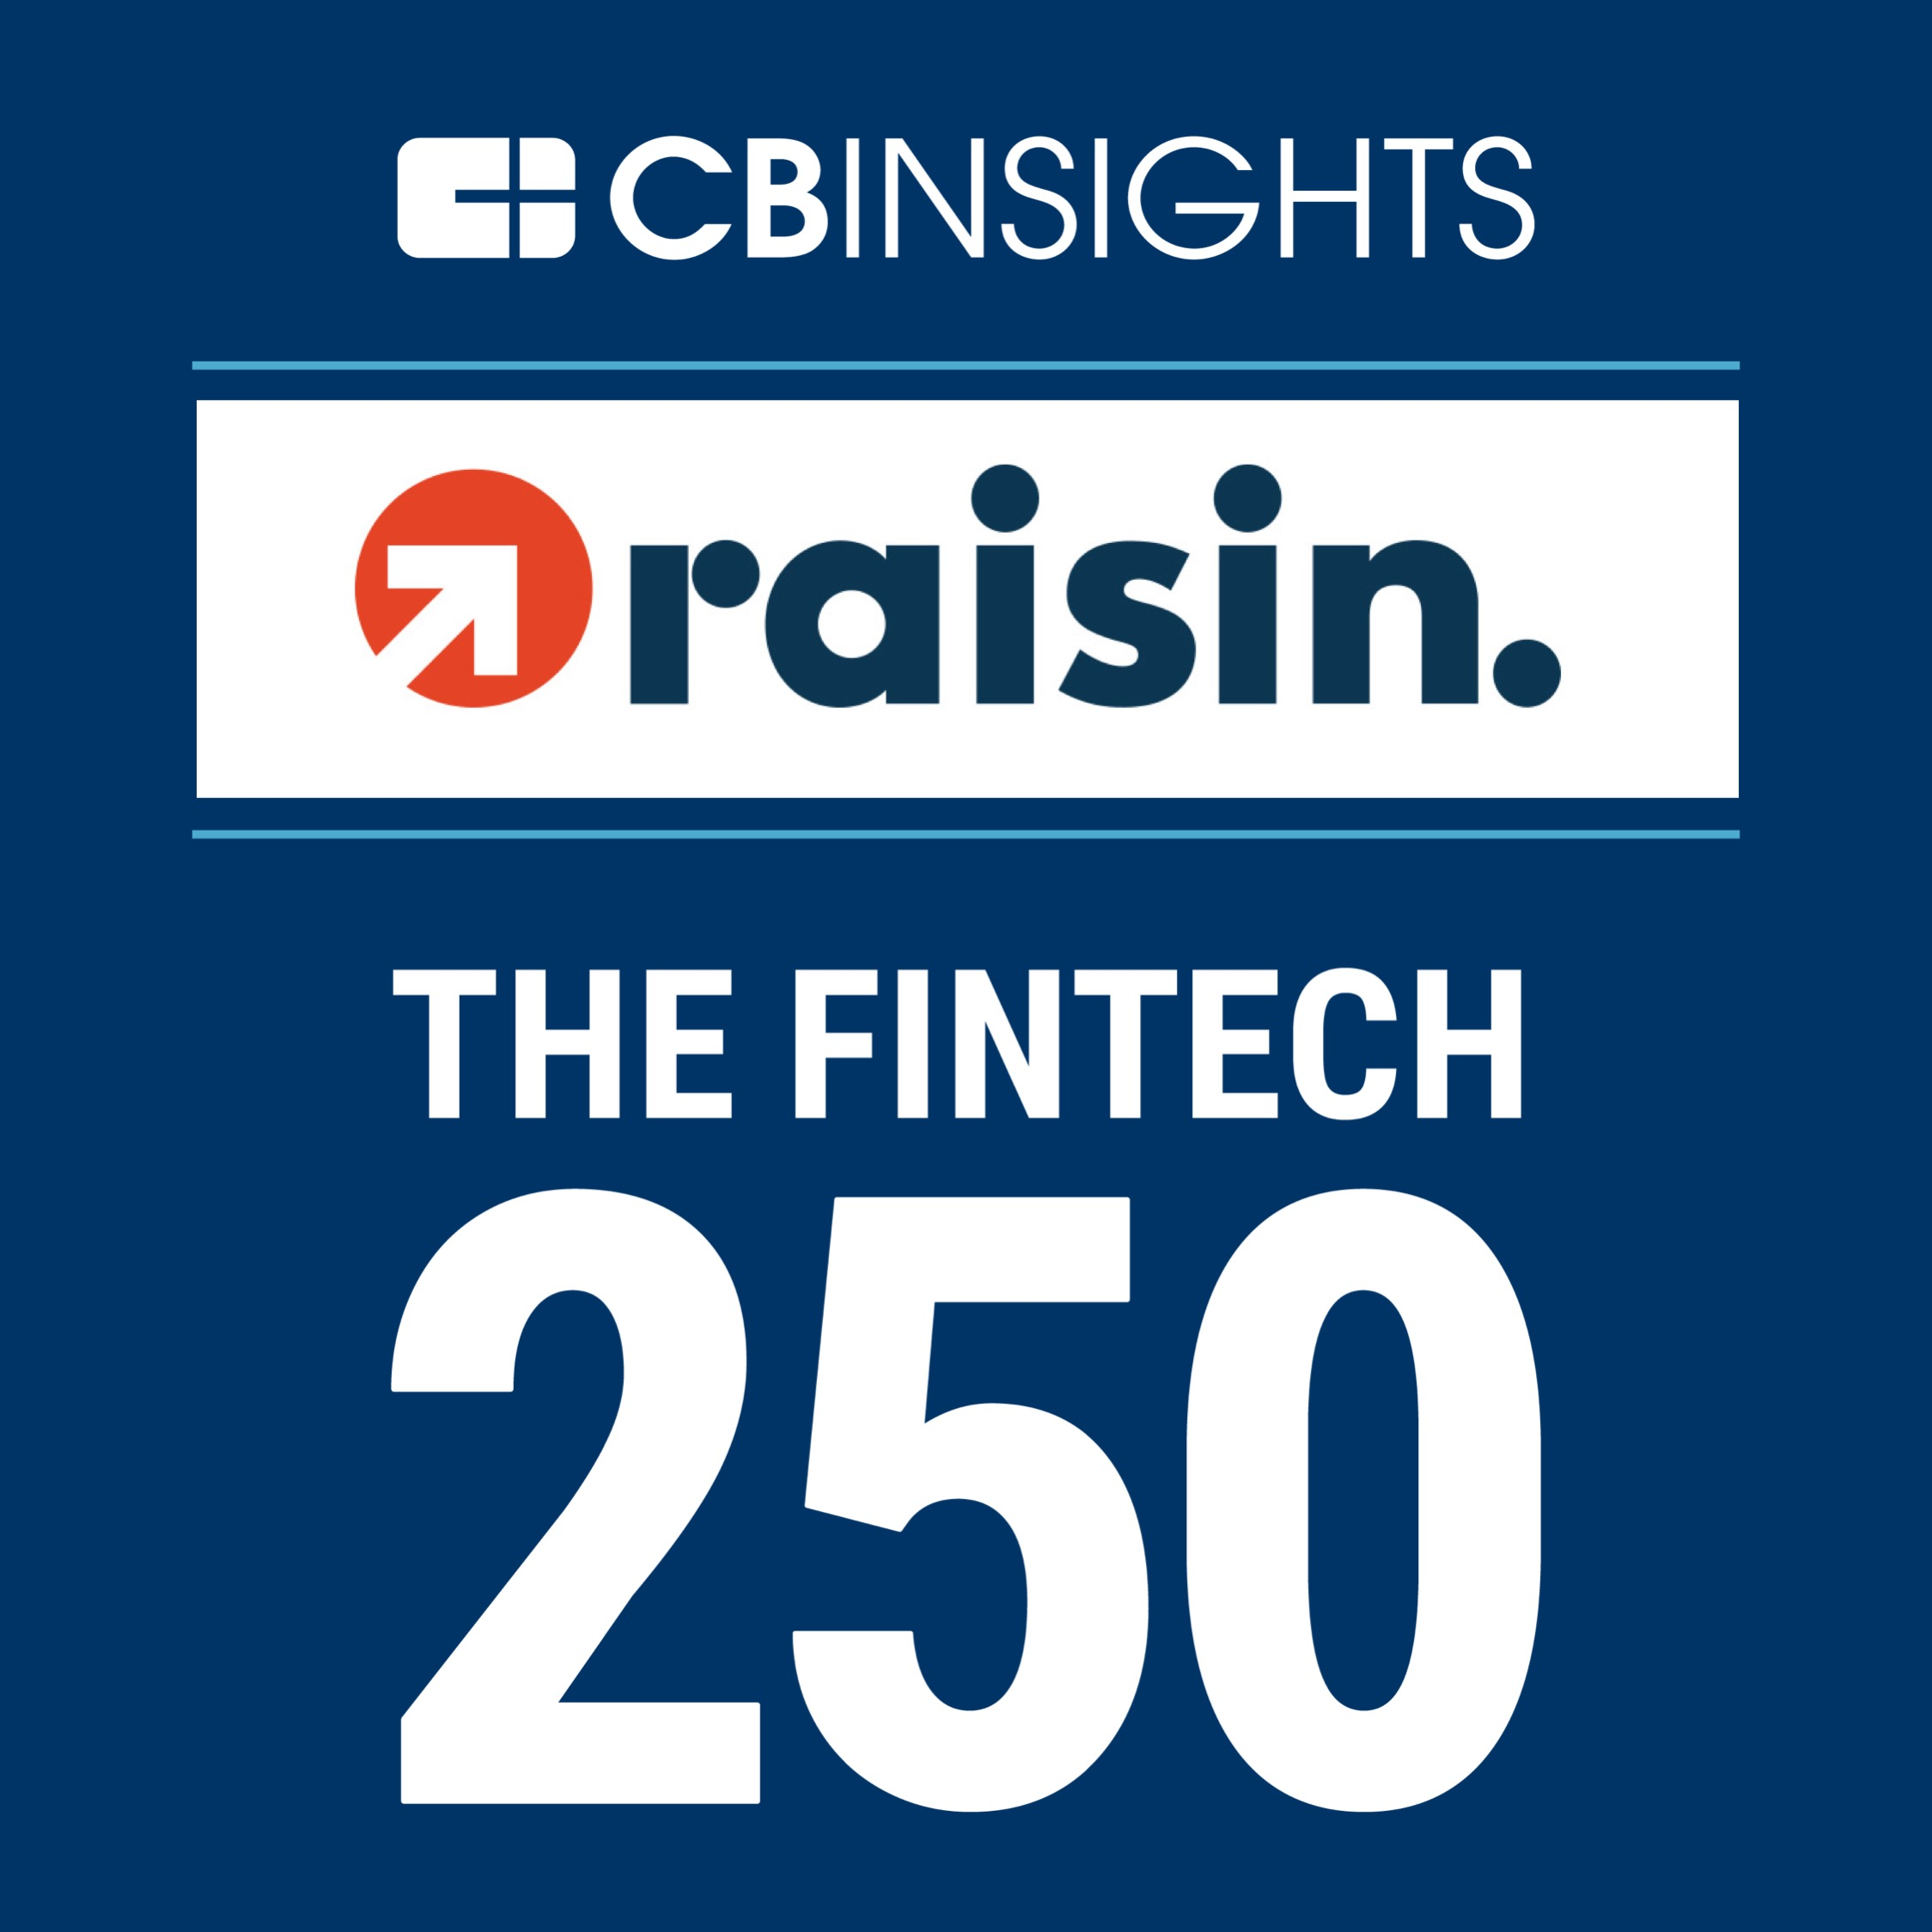 Raisin: The Fintech 250